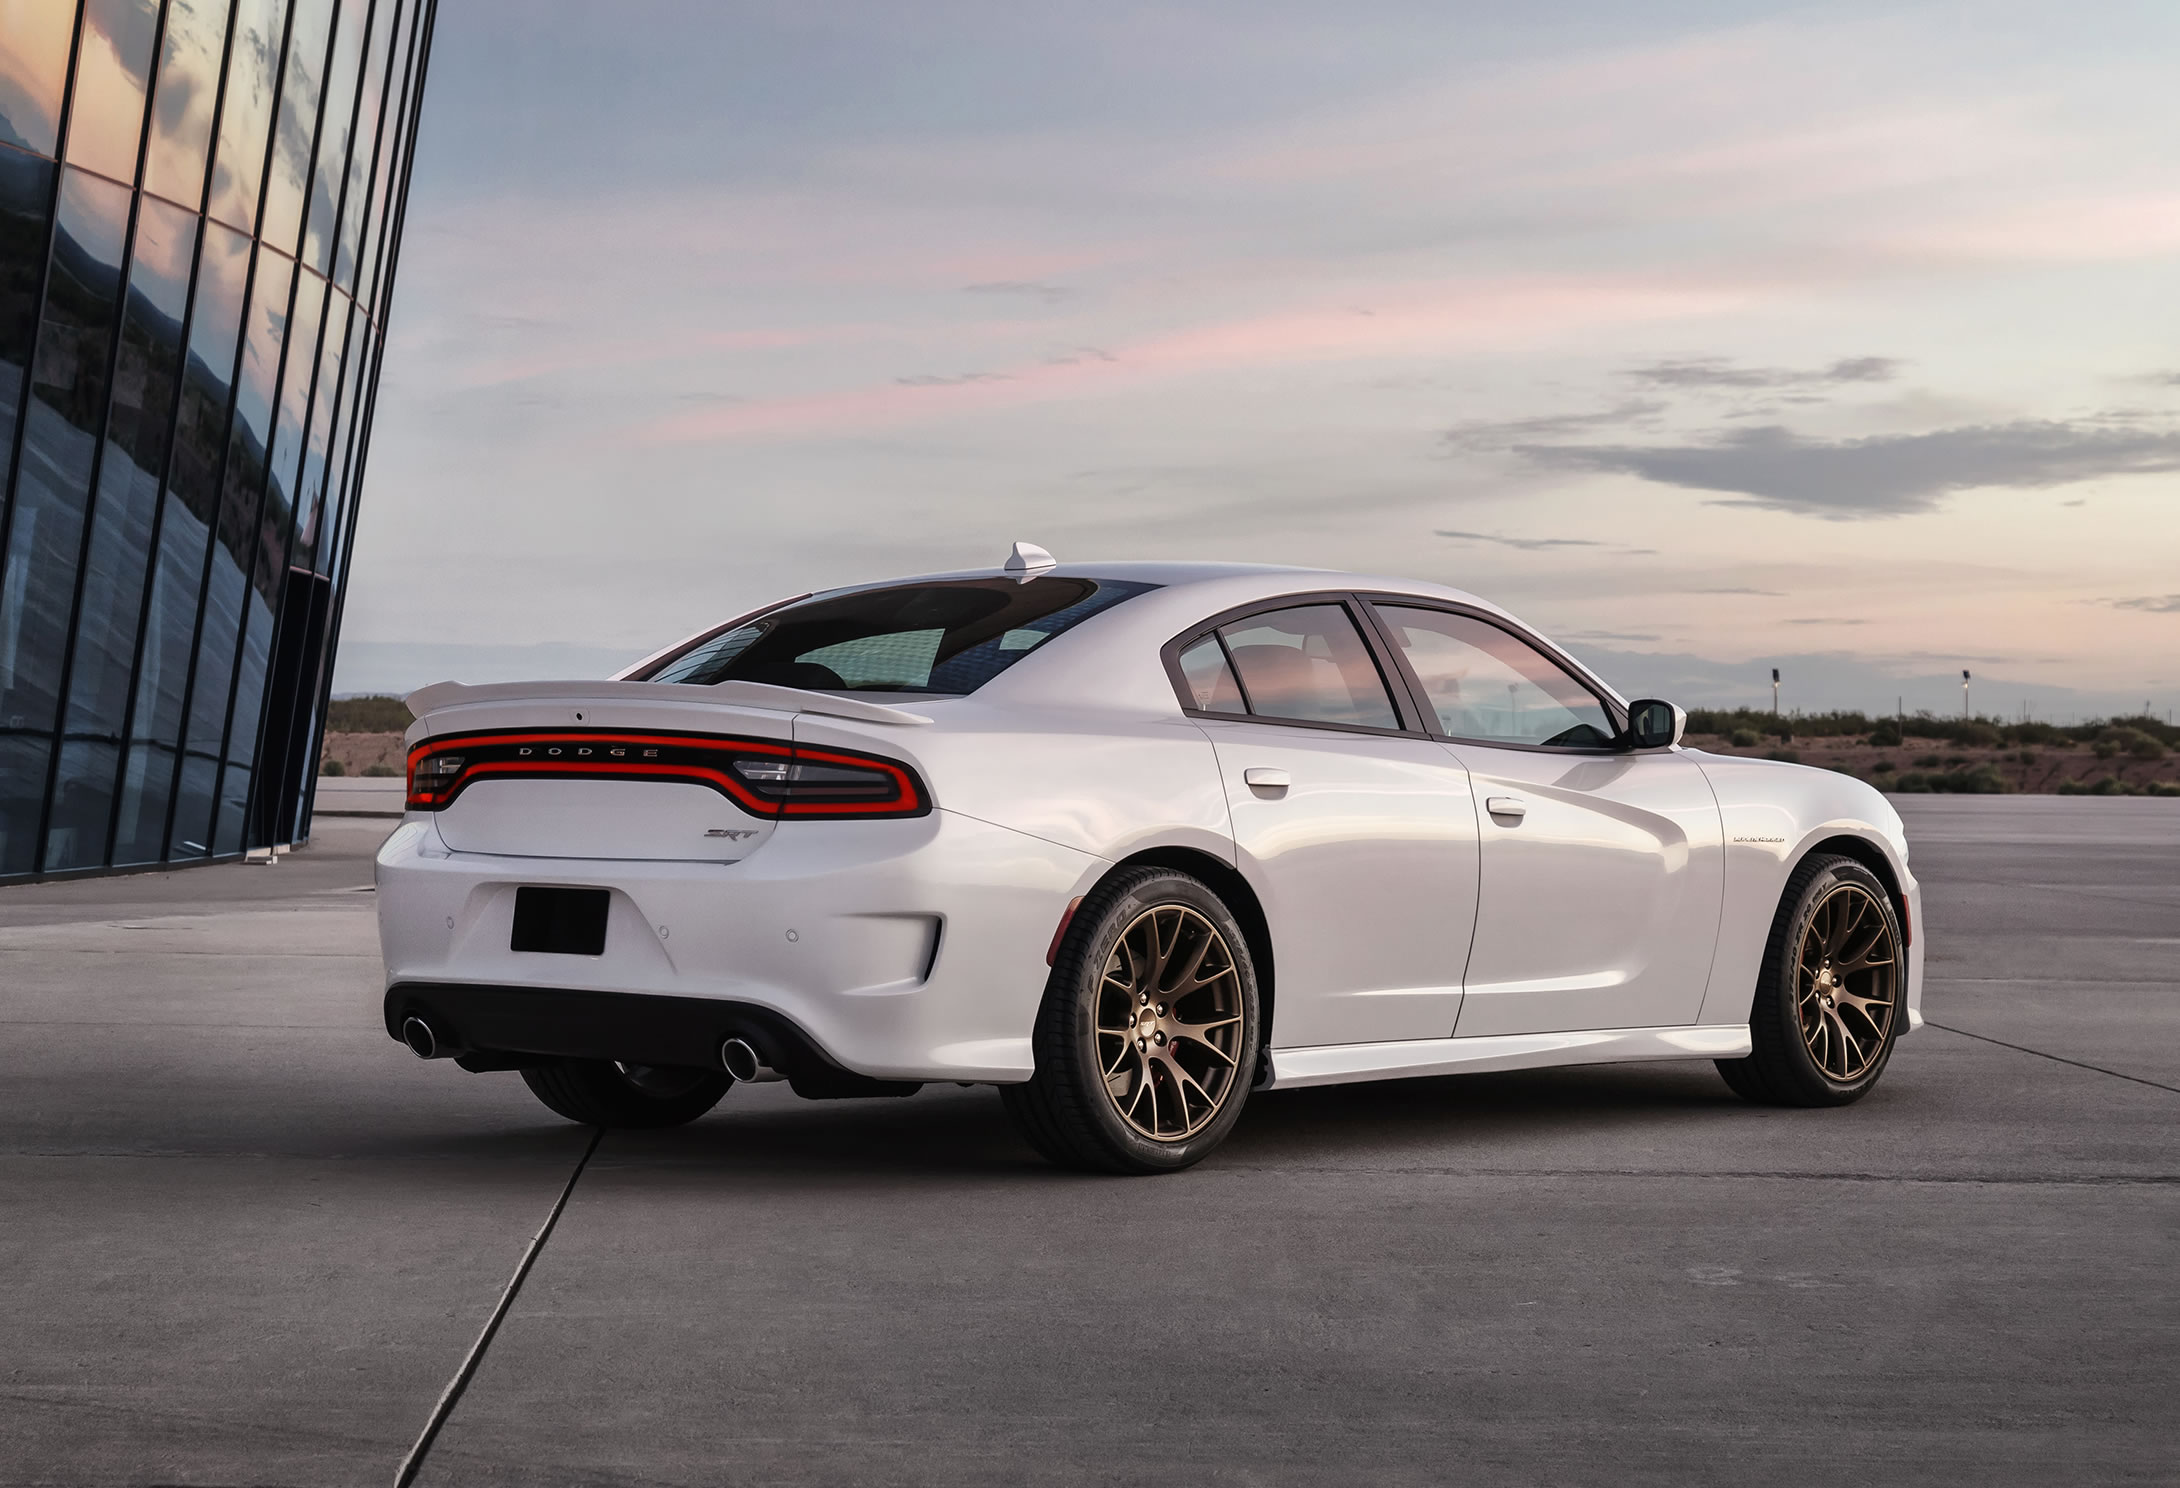 2015 dodge charger srt hellcat photos specs and review rs. Black Bedroom Furniture Sets. Home Design Ideas